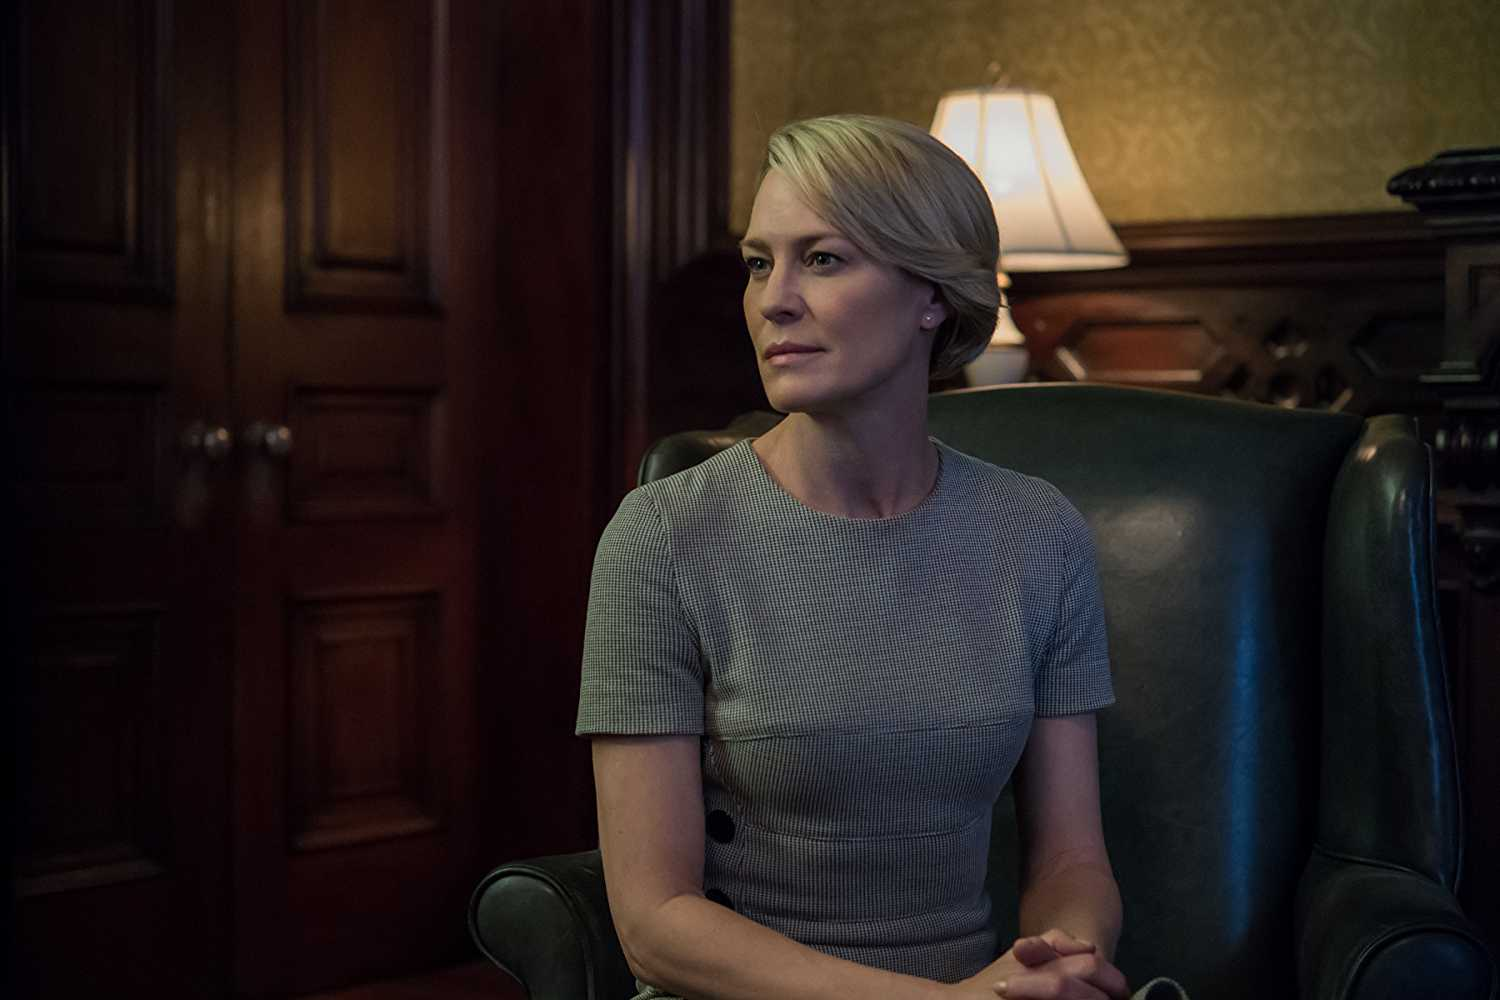 Wright's Claire Underwood will be the President in season six (Source: IMDb)